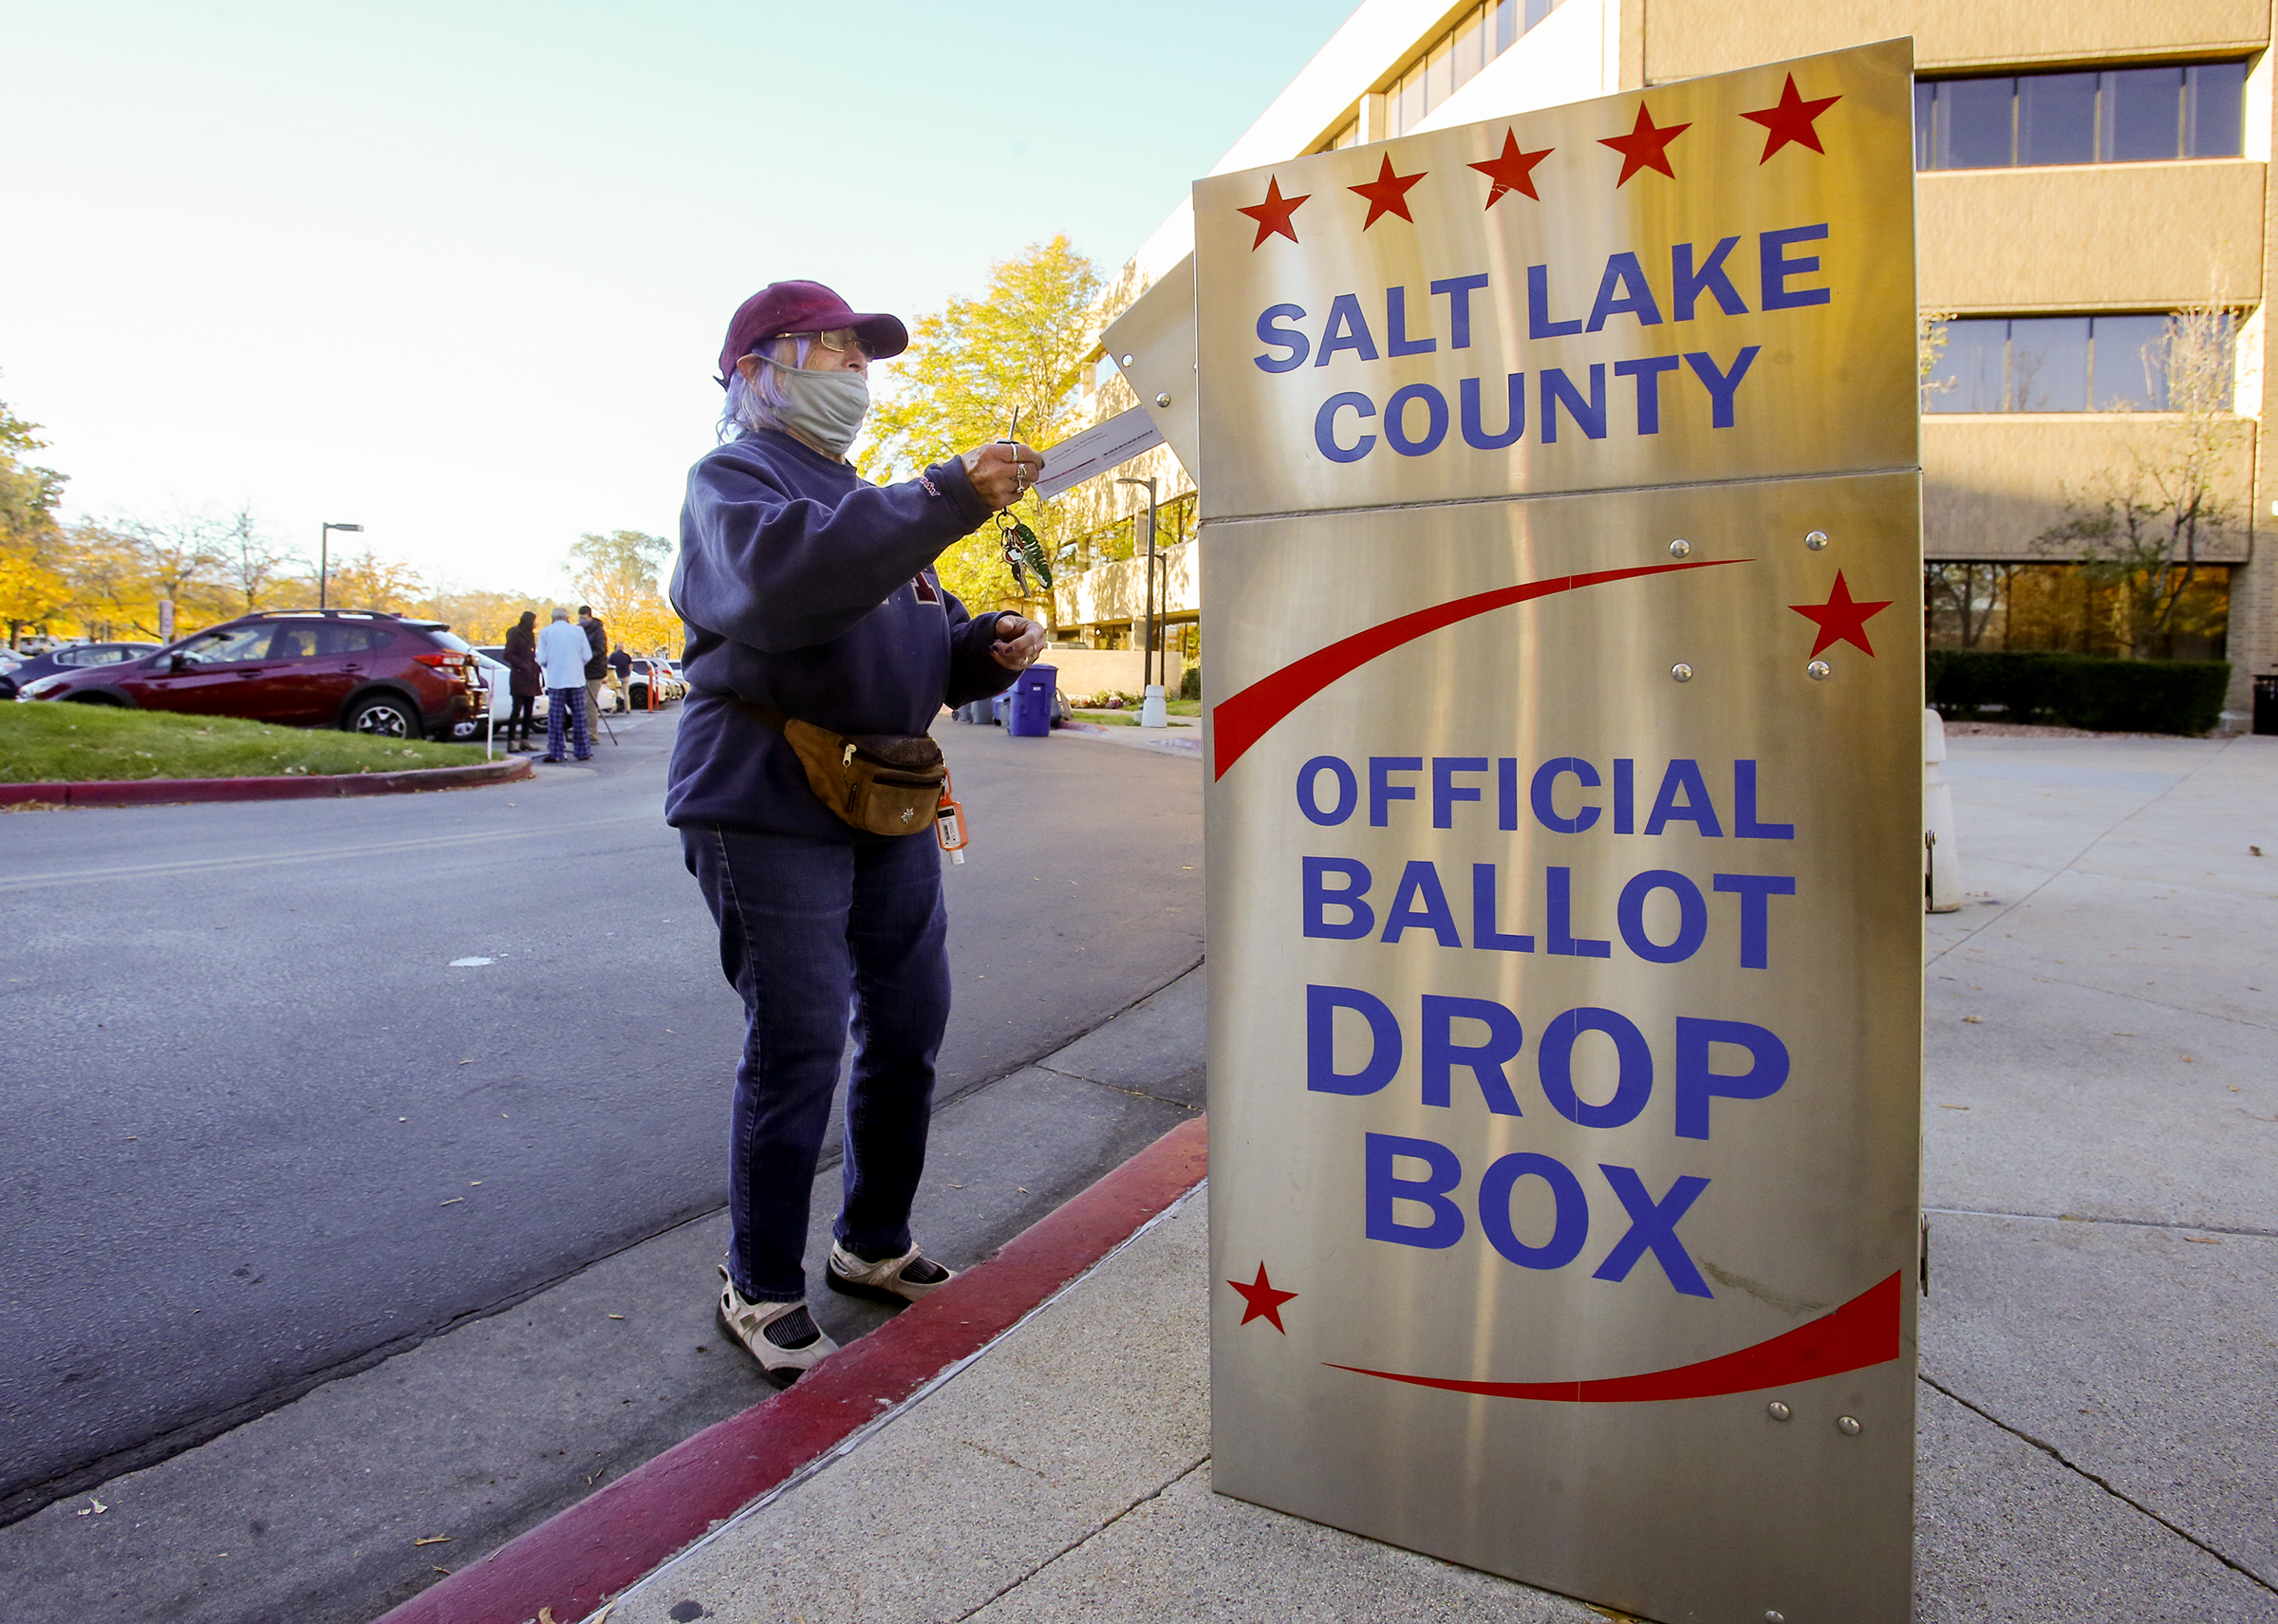 A voters puts a ballot into an official drop box.